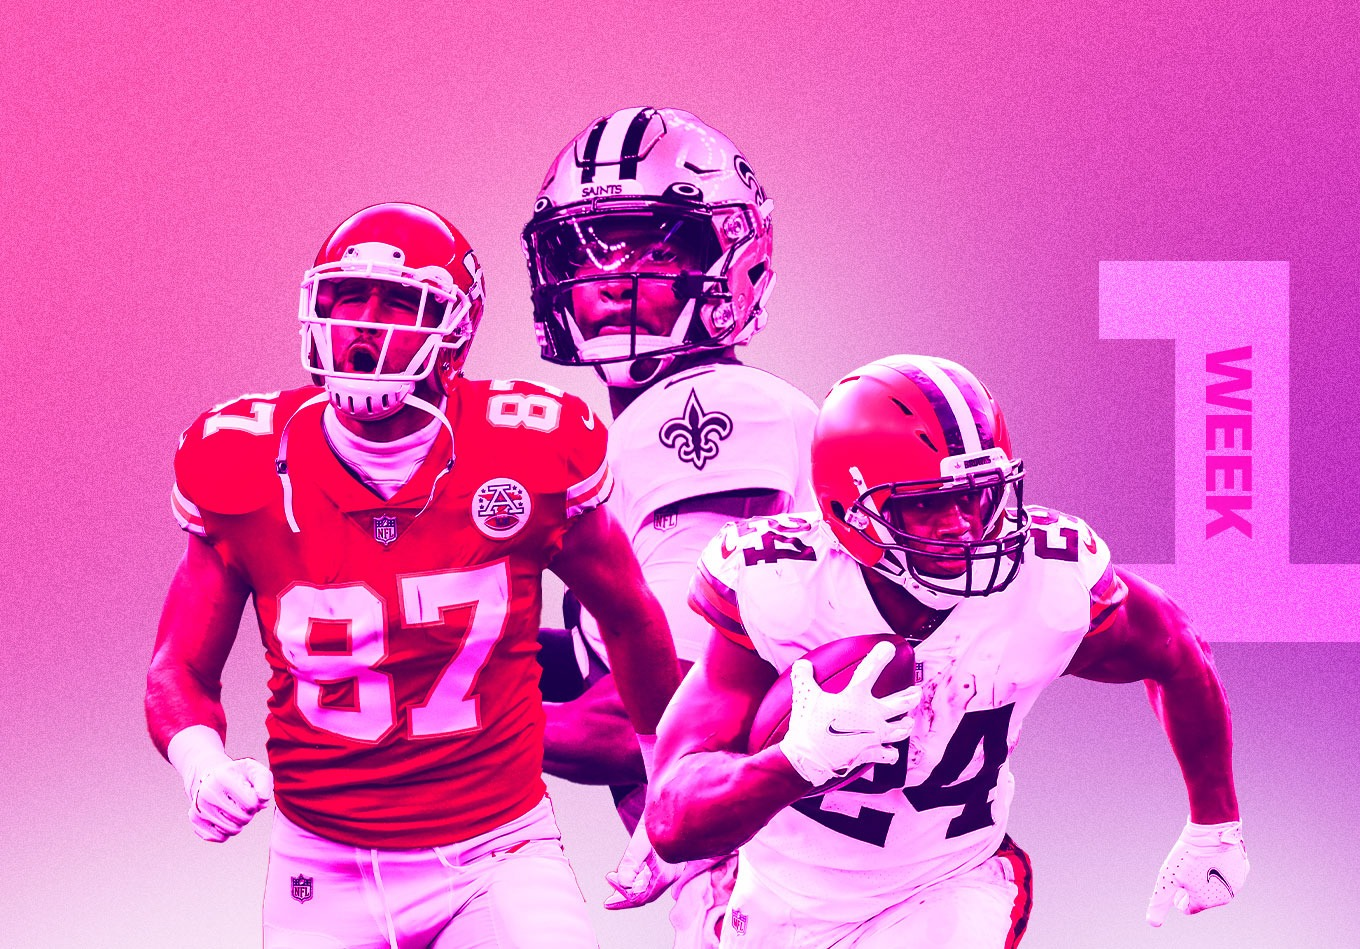 Cover 3: The Must-See Matchups of the NFL's Opening Weekend